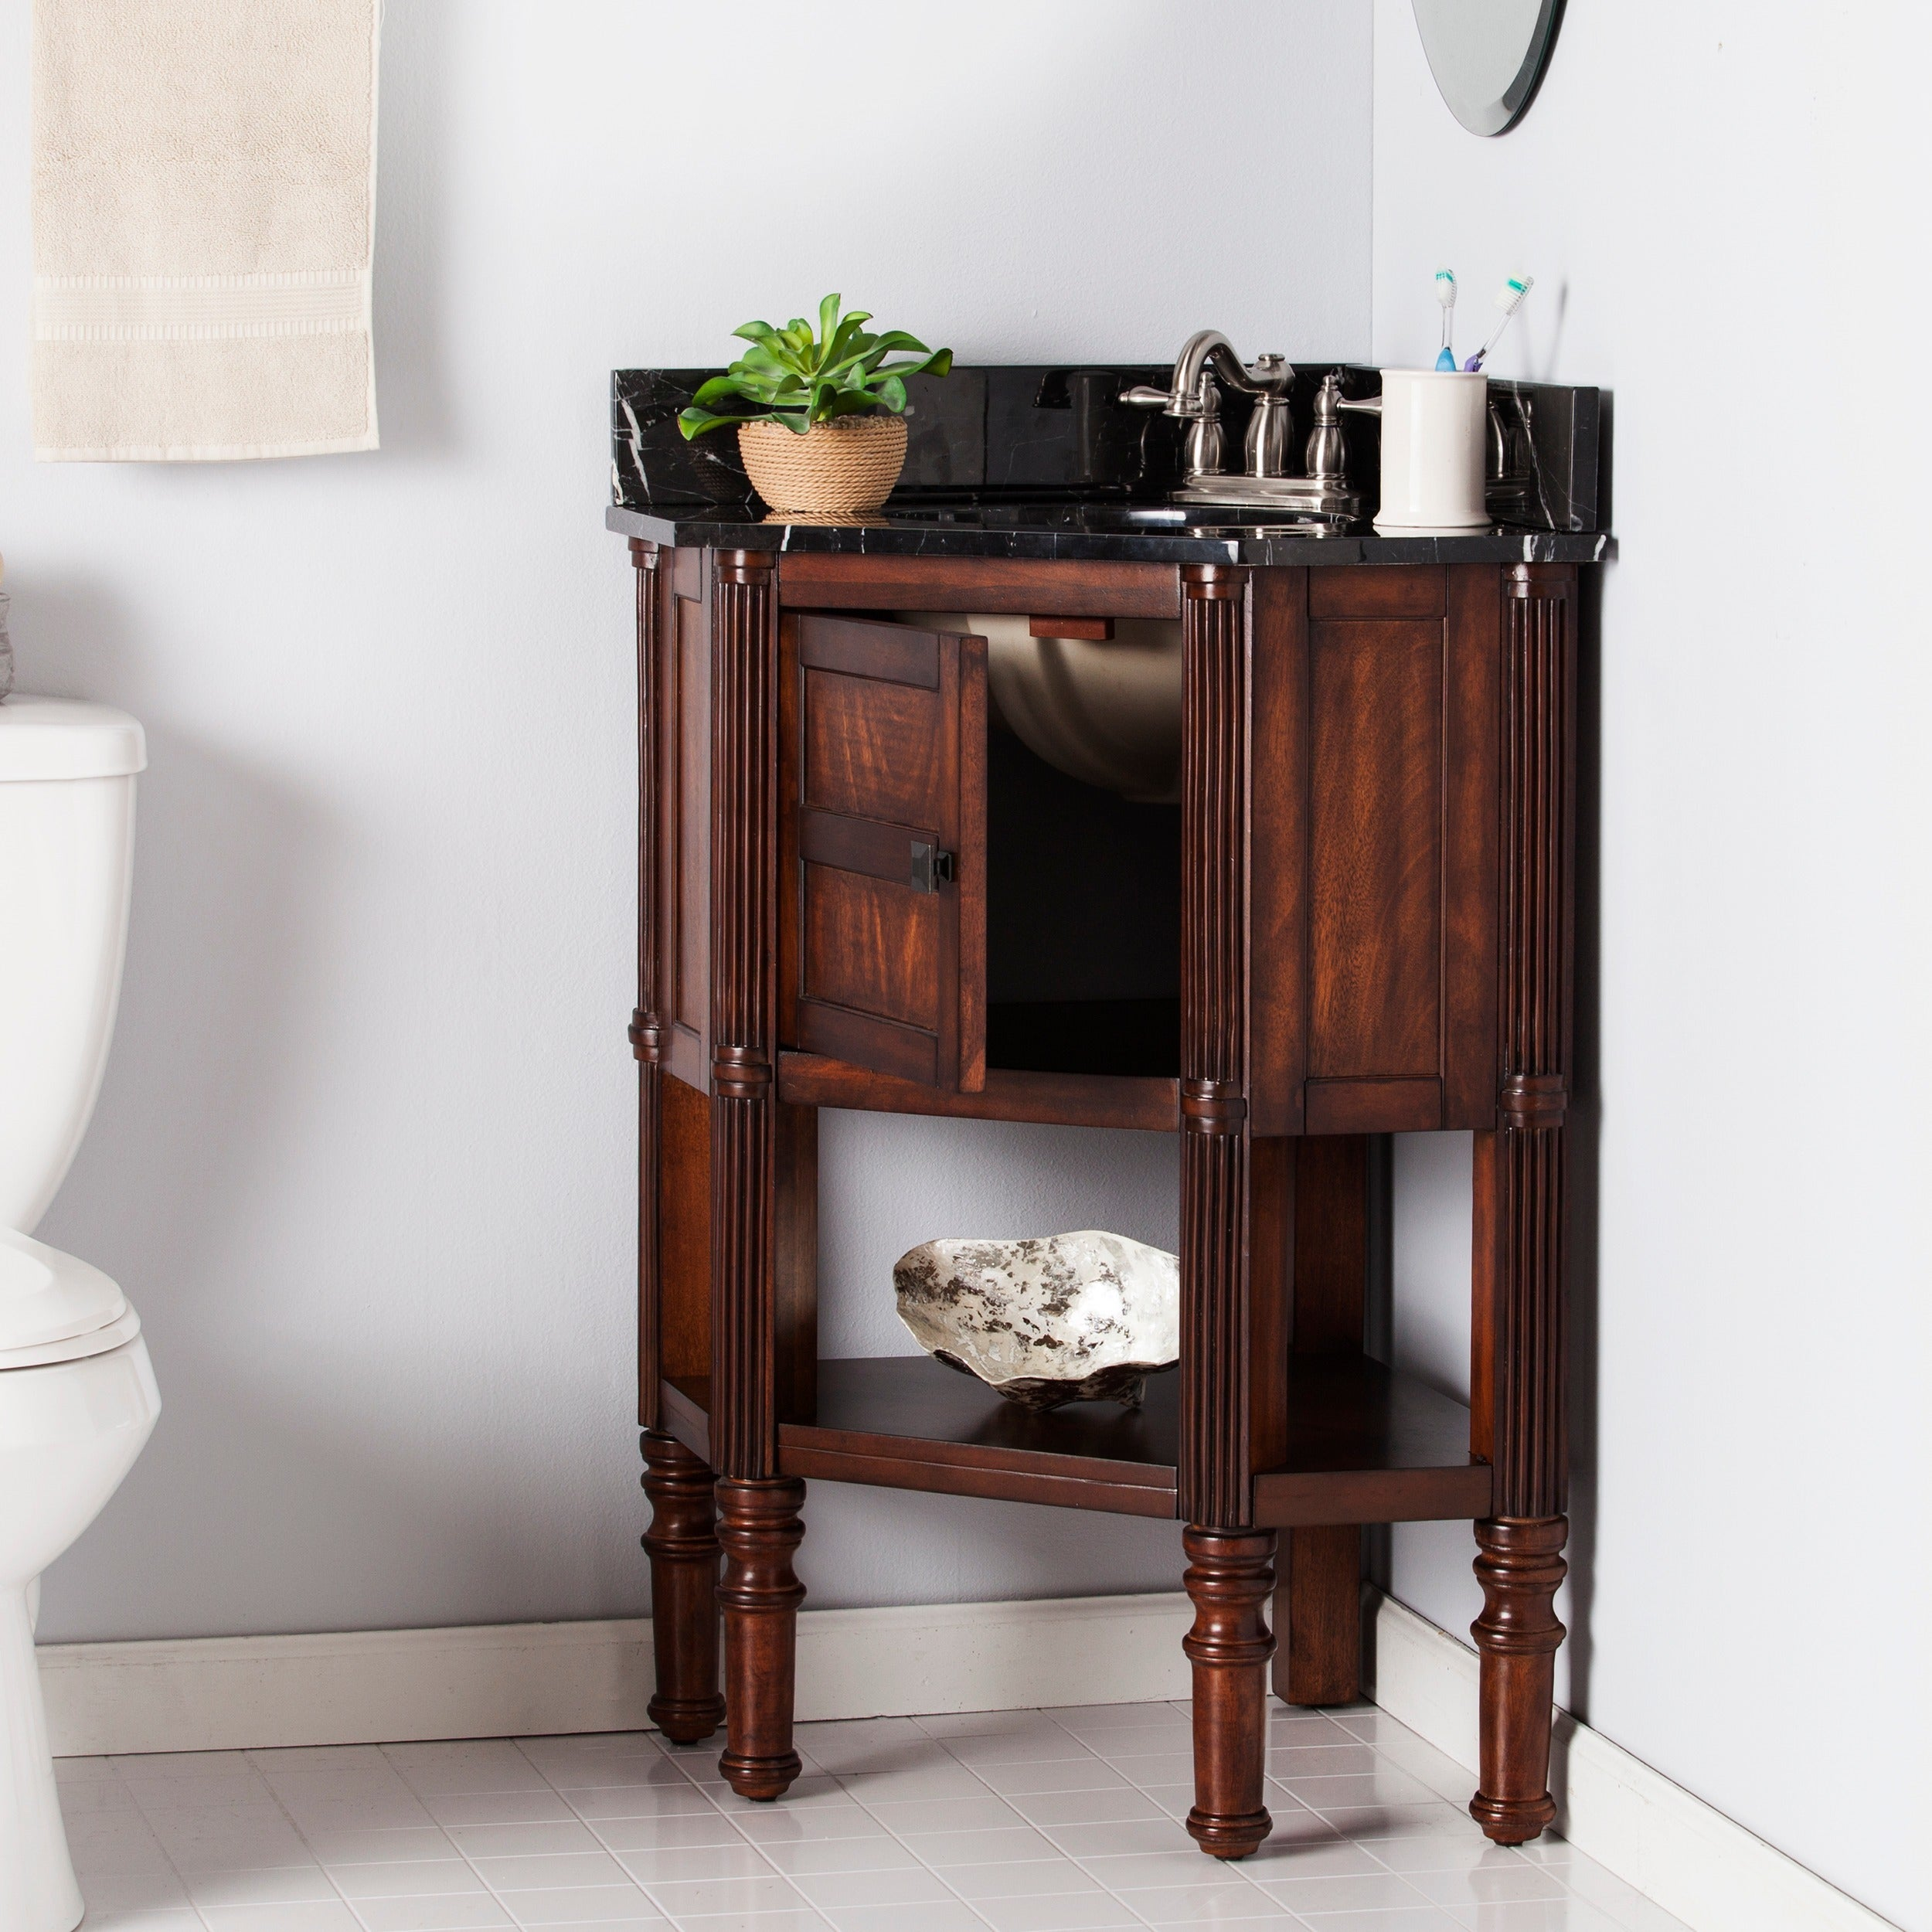 sink gb washstands godmorgon ikea drawers viken wash stands high taps units gloss with br stand white cabinets en products vanity